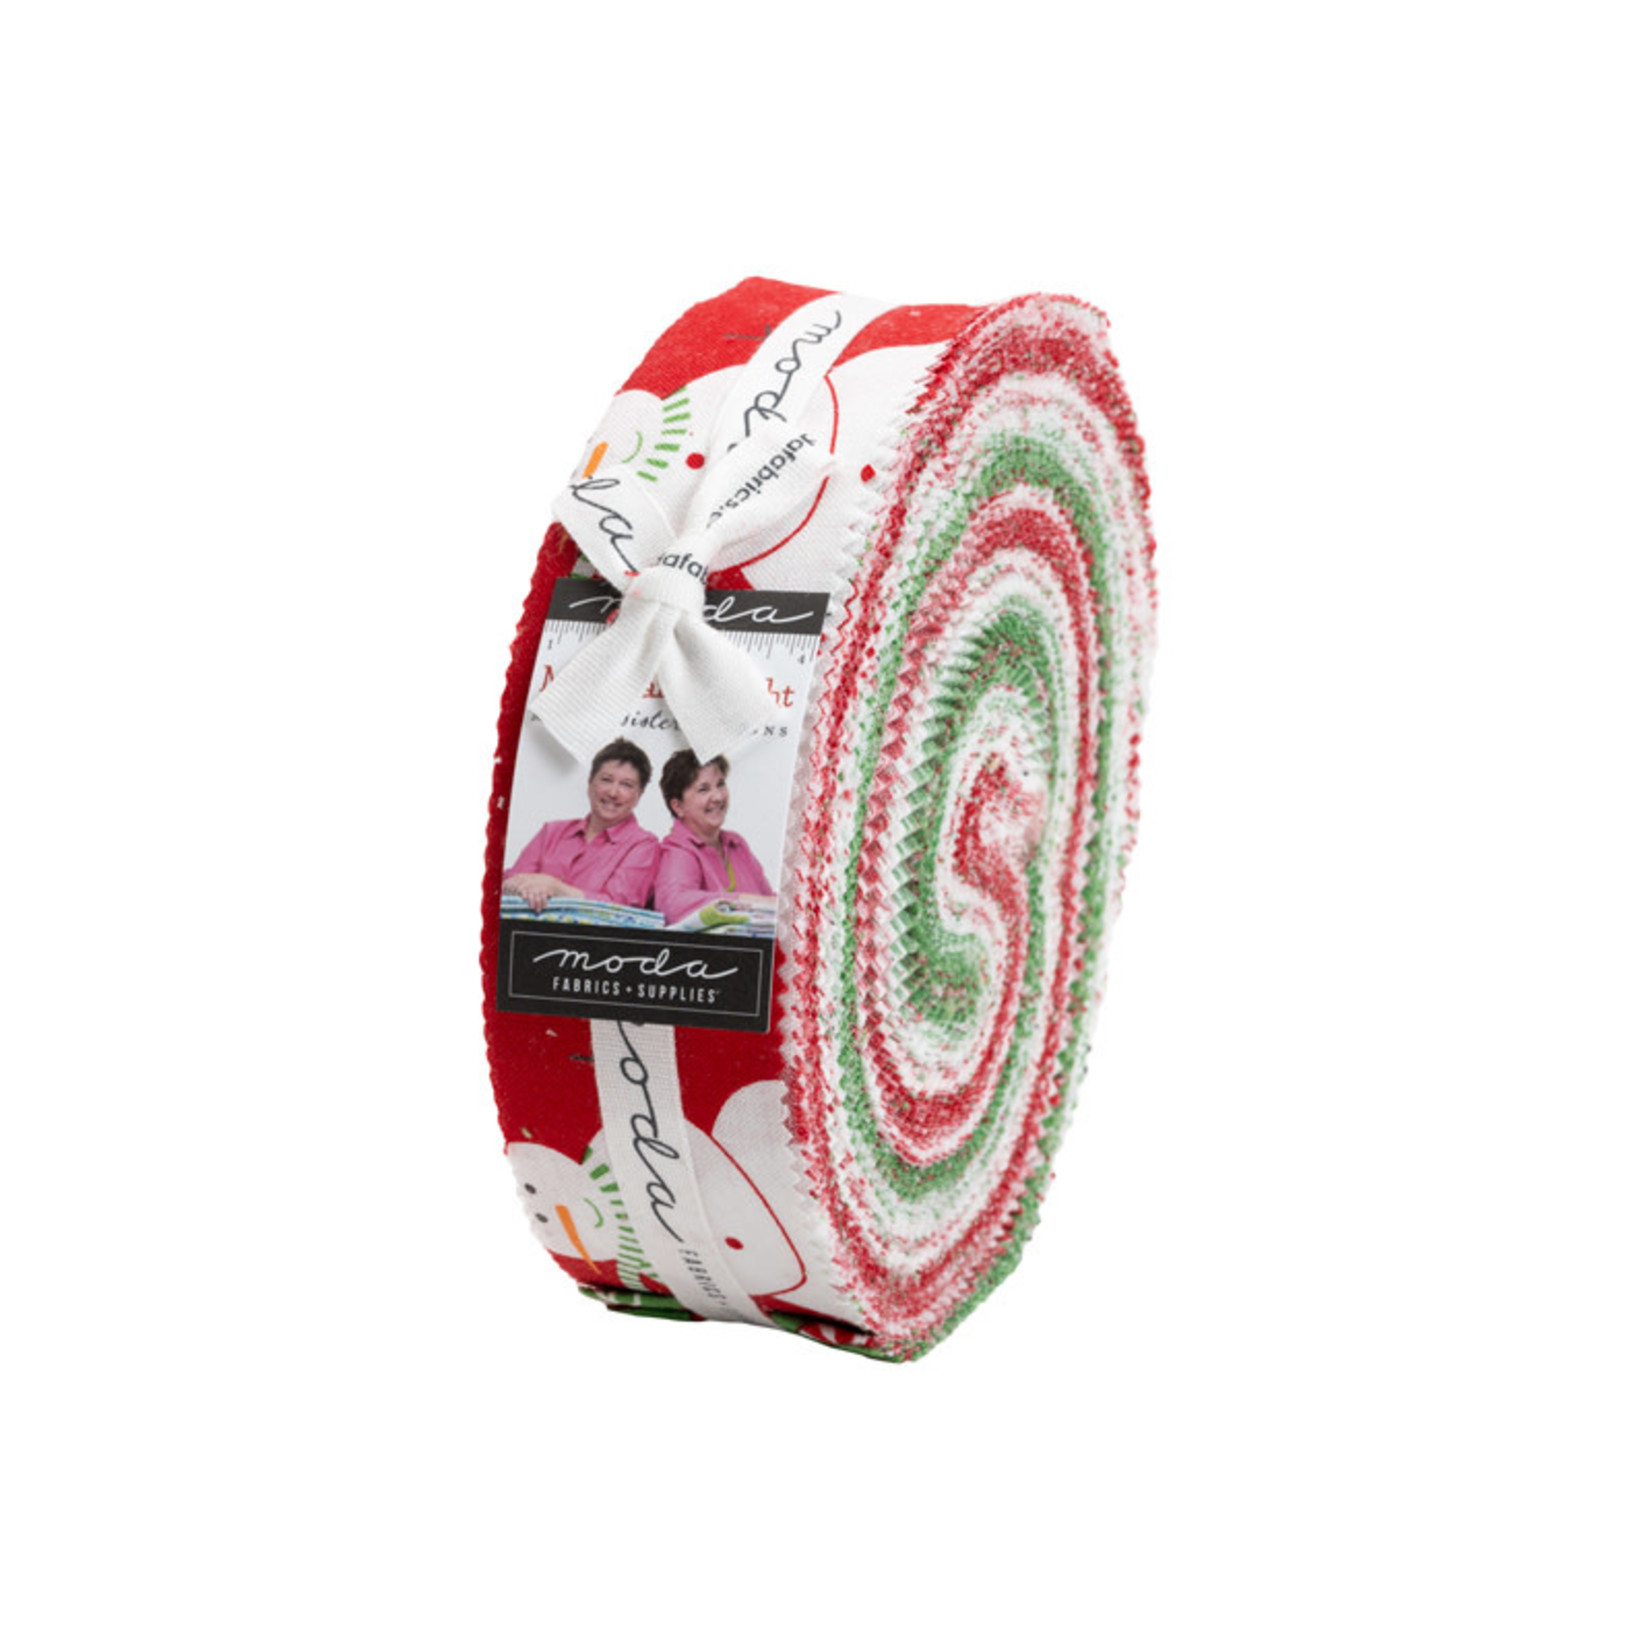 Me and My Sister Designs Merry and Bright, Honey Bun 40 pcs